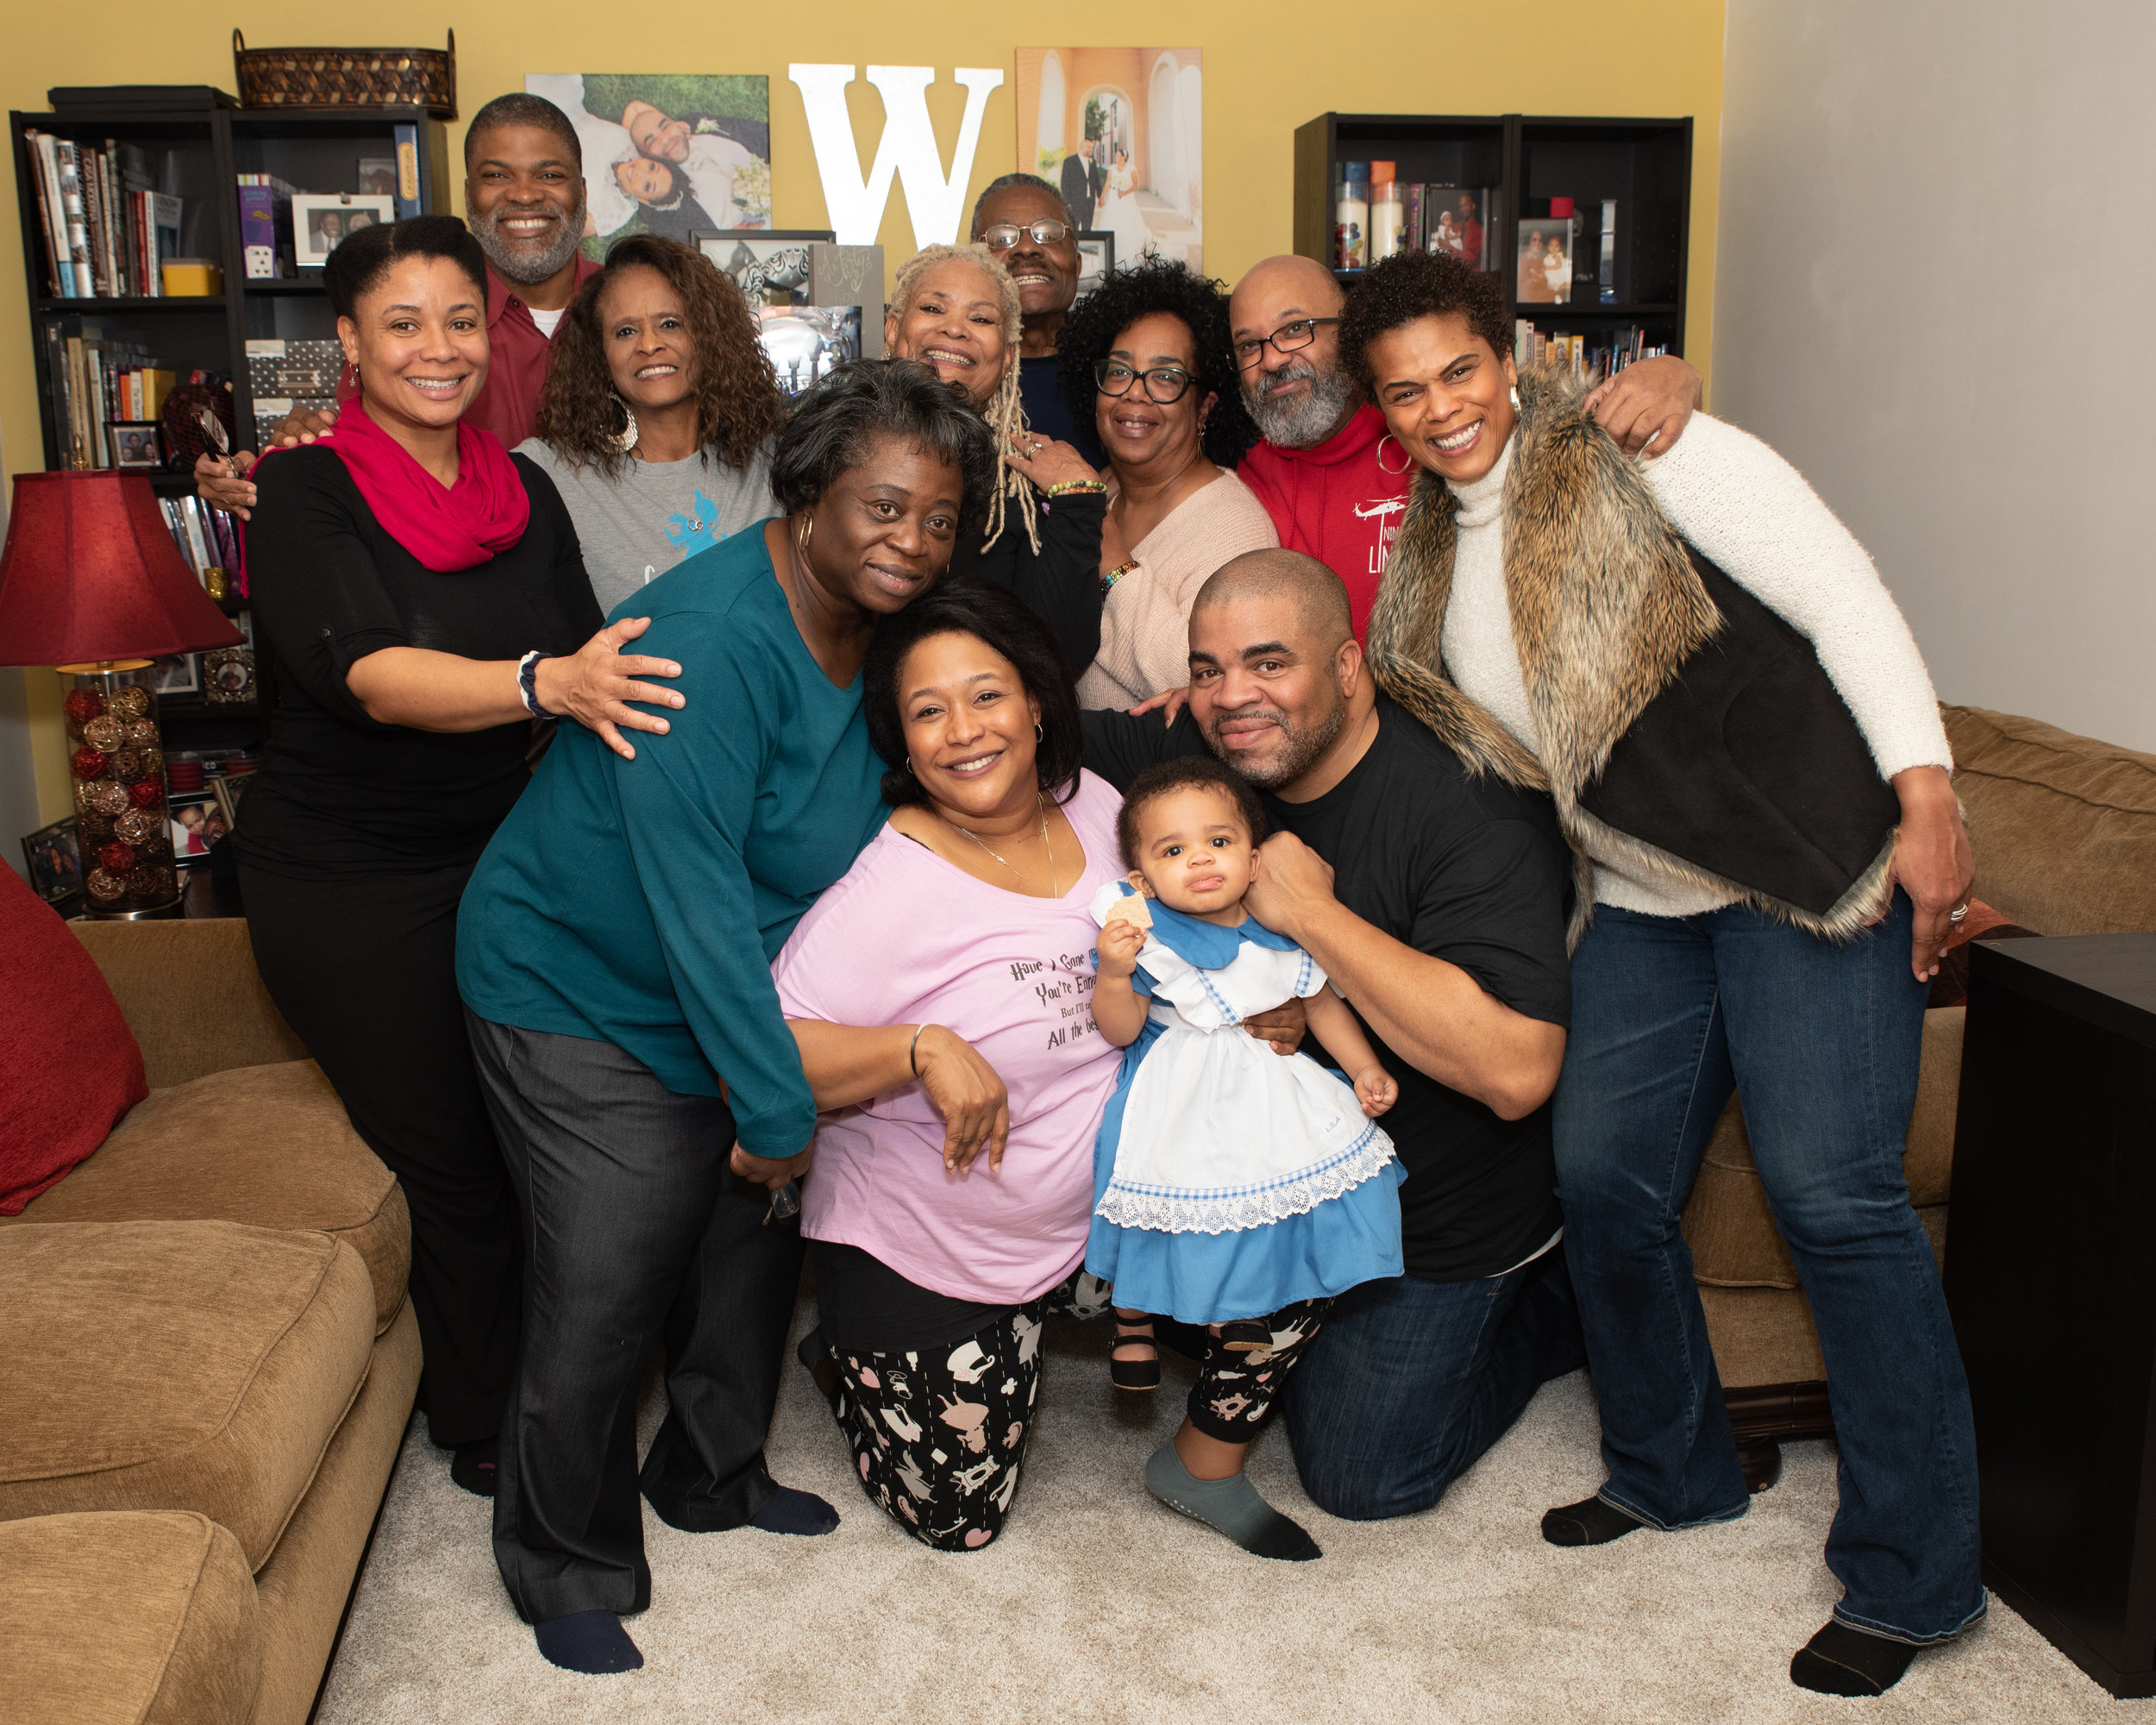 2018_November_17-Walls_Birthday_Party-52844.jpg